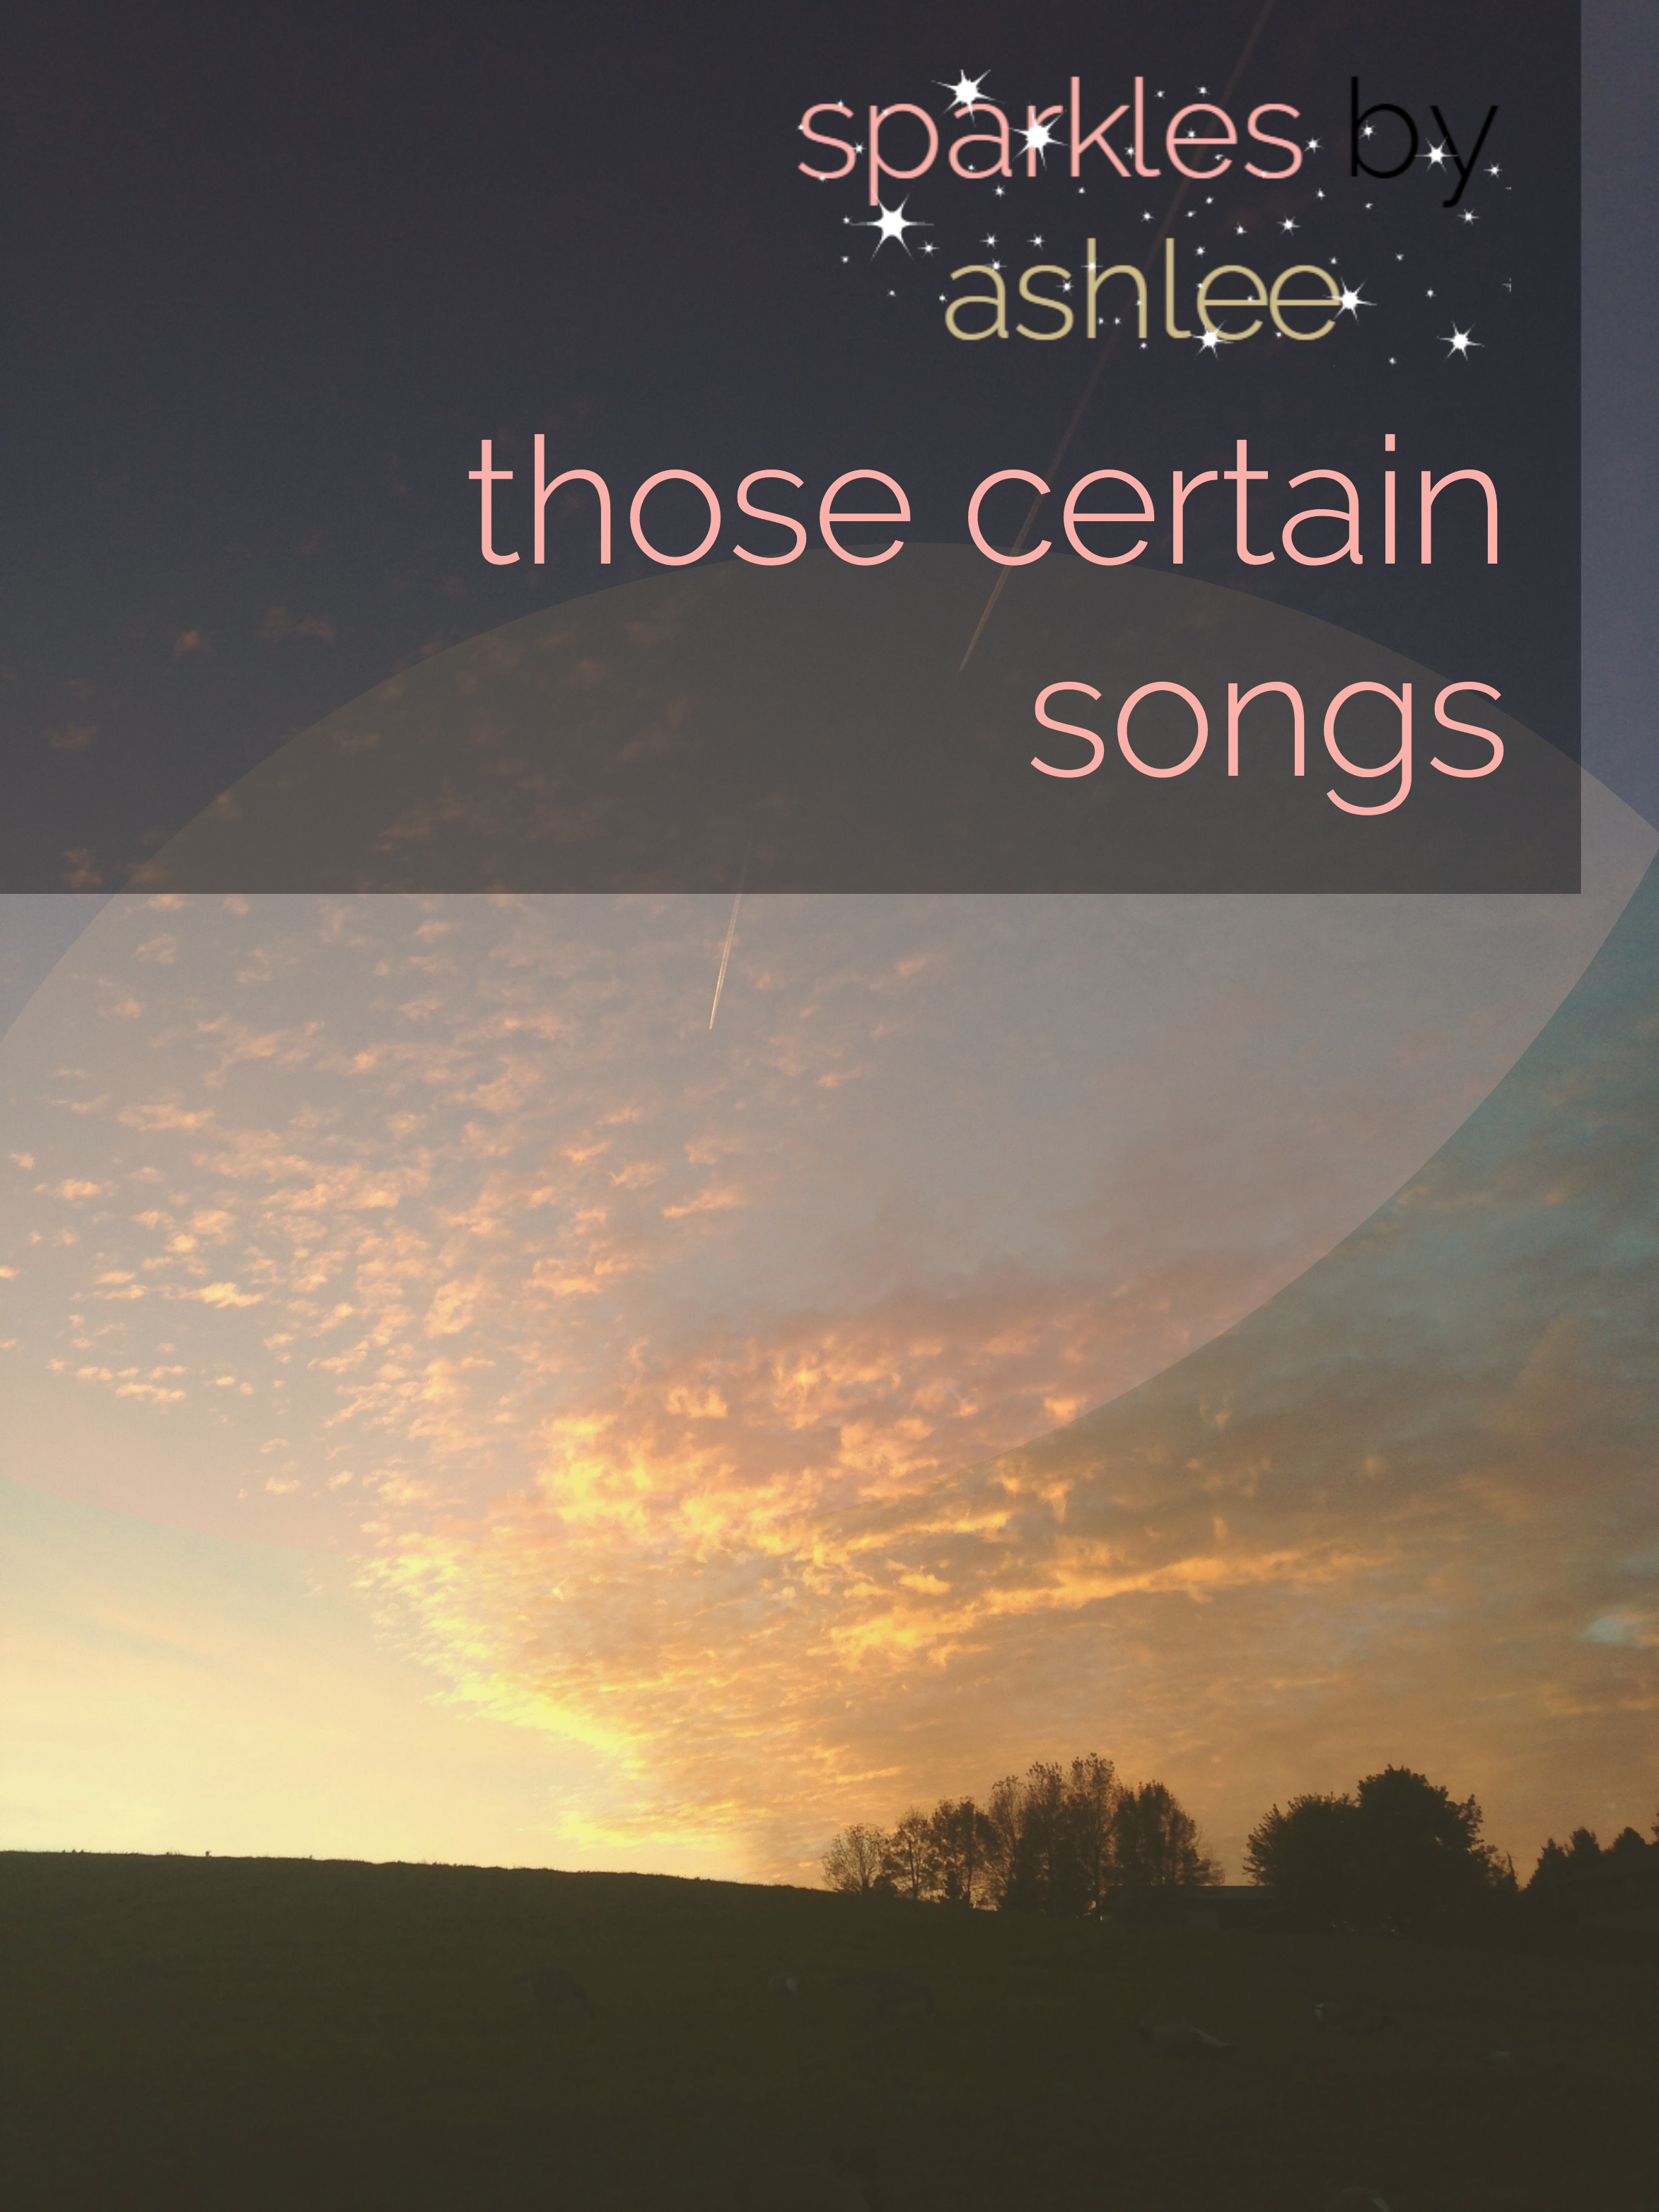 Those-Certain-Songs-Sparkles-by-Ashlee.jpg